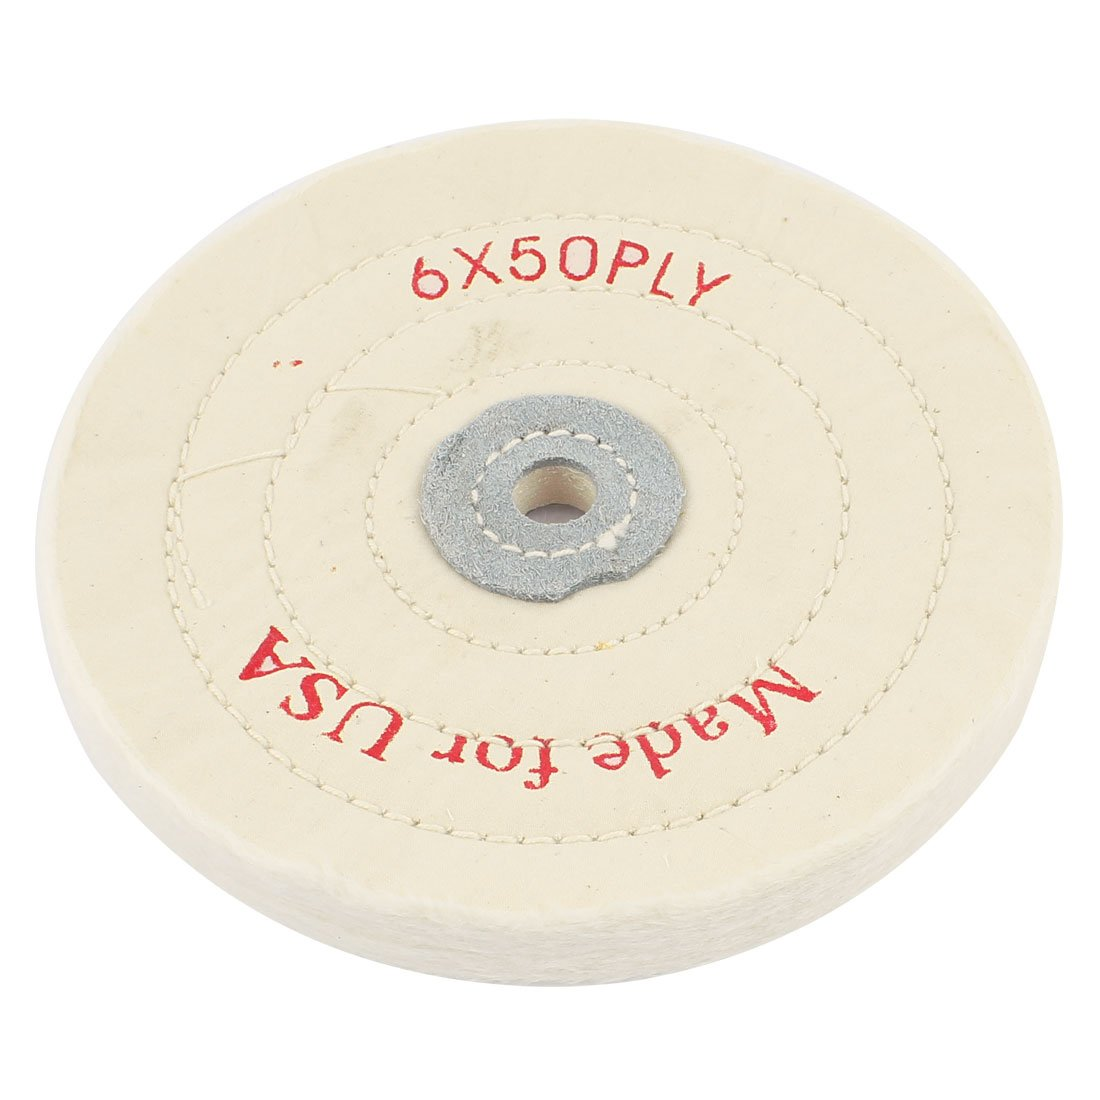 Round Polish Buffing Wheel Cotton Pad 1/2 Inch x 6 Inch 50 Ply White Sourcingmap a14103000ux0093